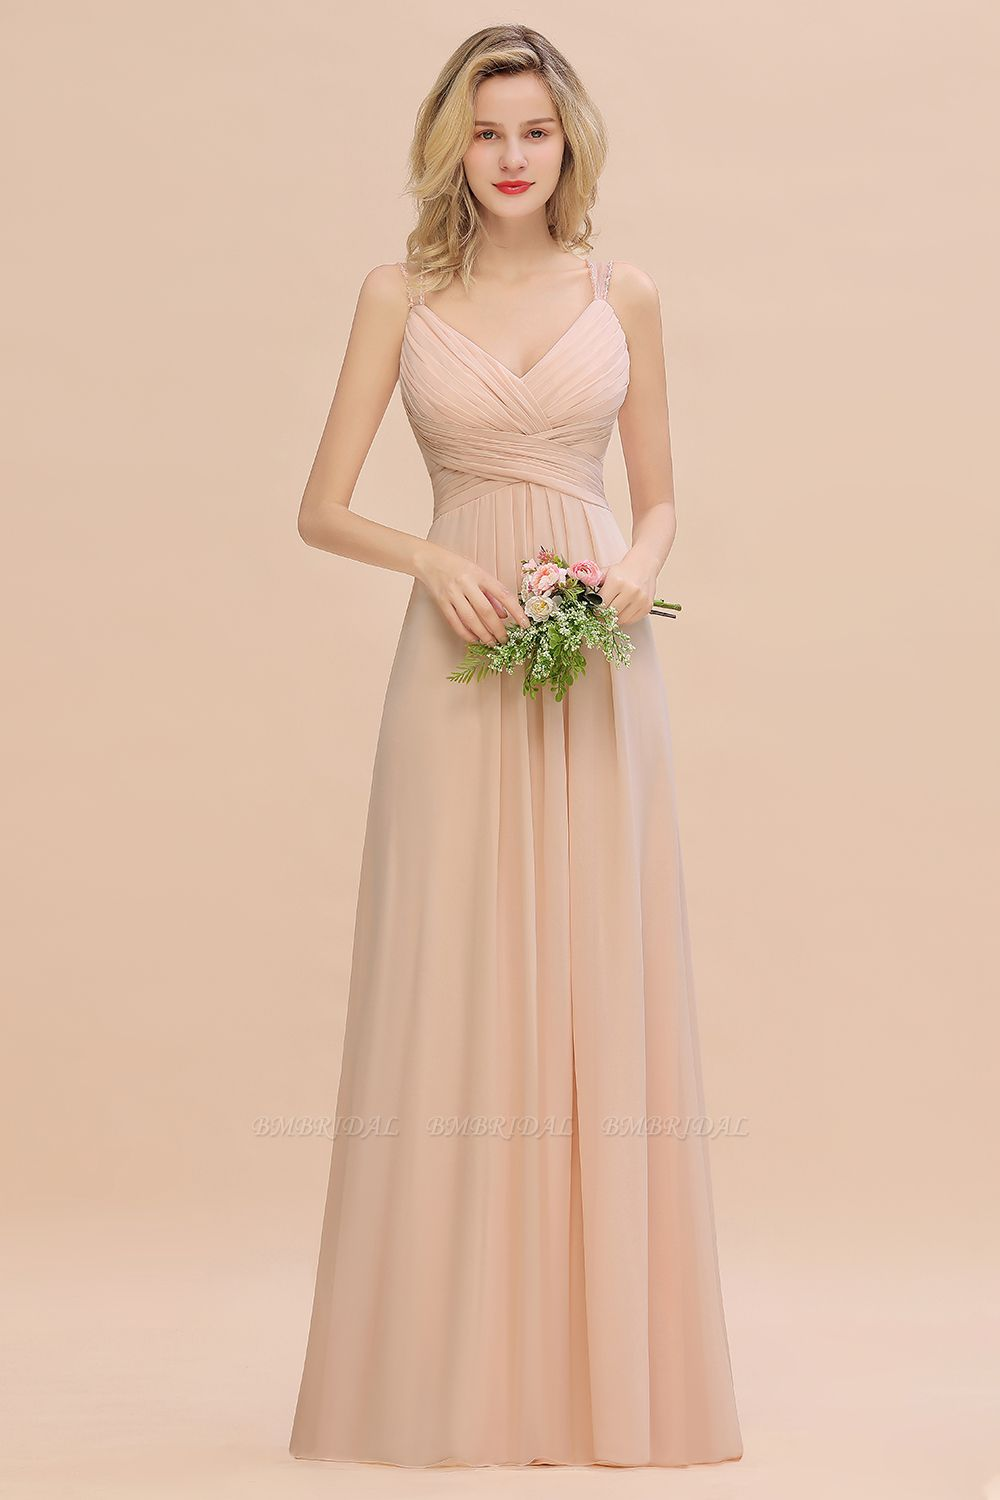 Elegant Spaghetti Straps Pink Backless Bridesmaid Dresses with Beadings